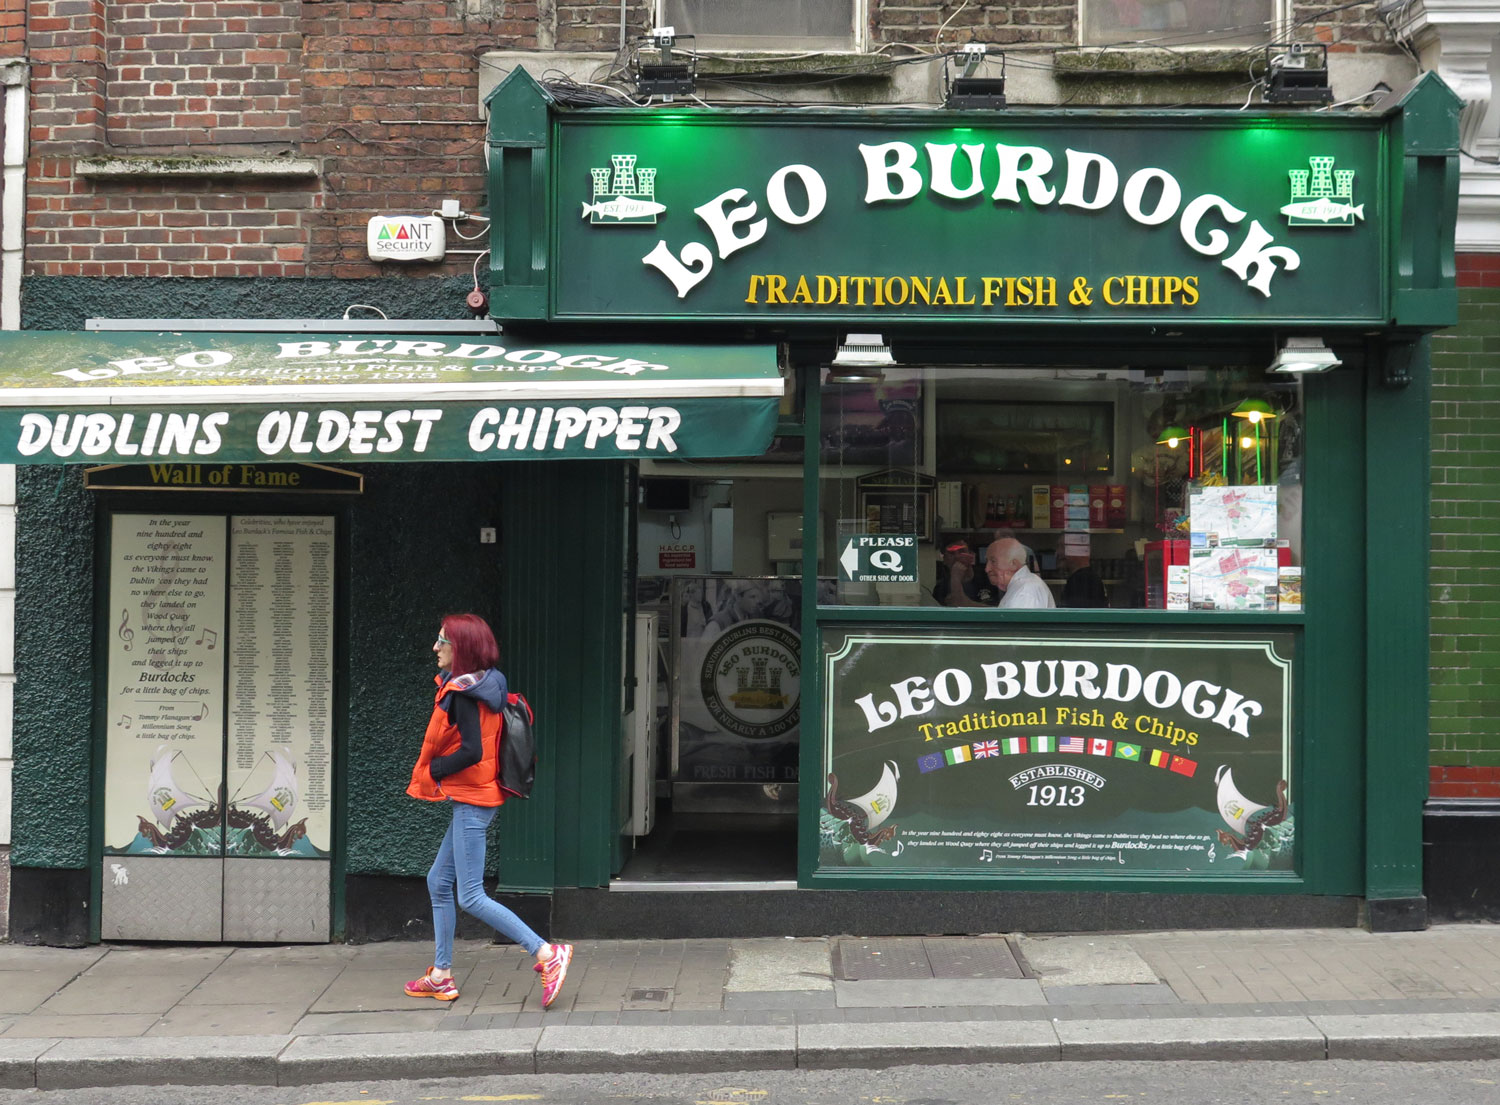 ireland-dublin-leo-burdock-fish-and-chips